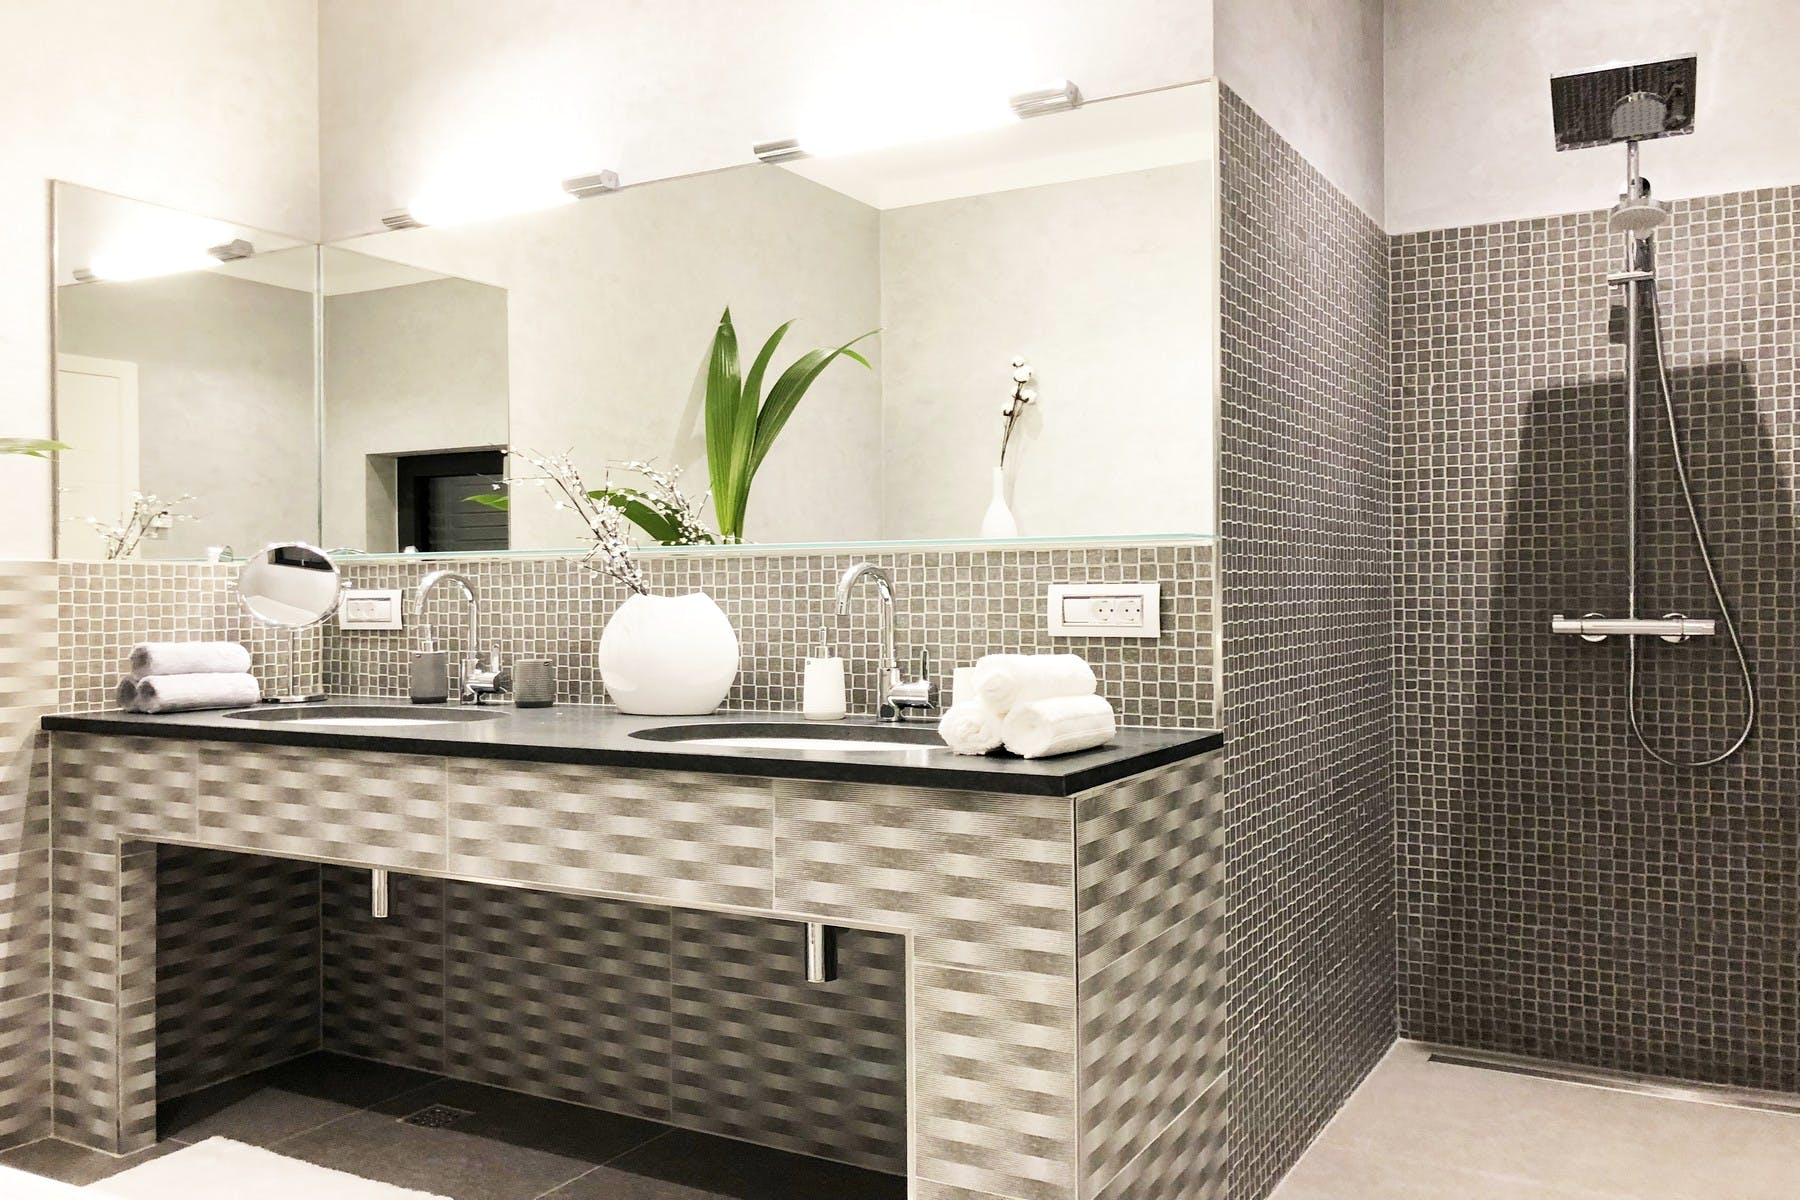 Large sink and mirror